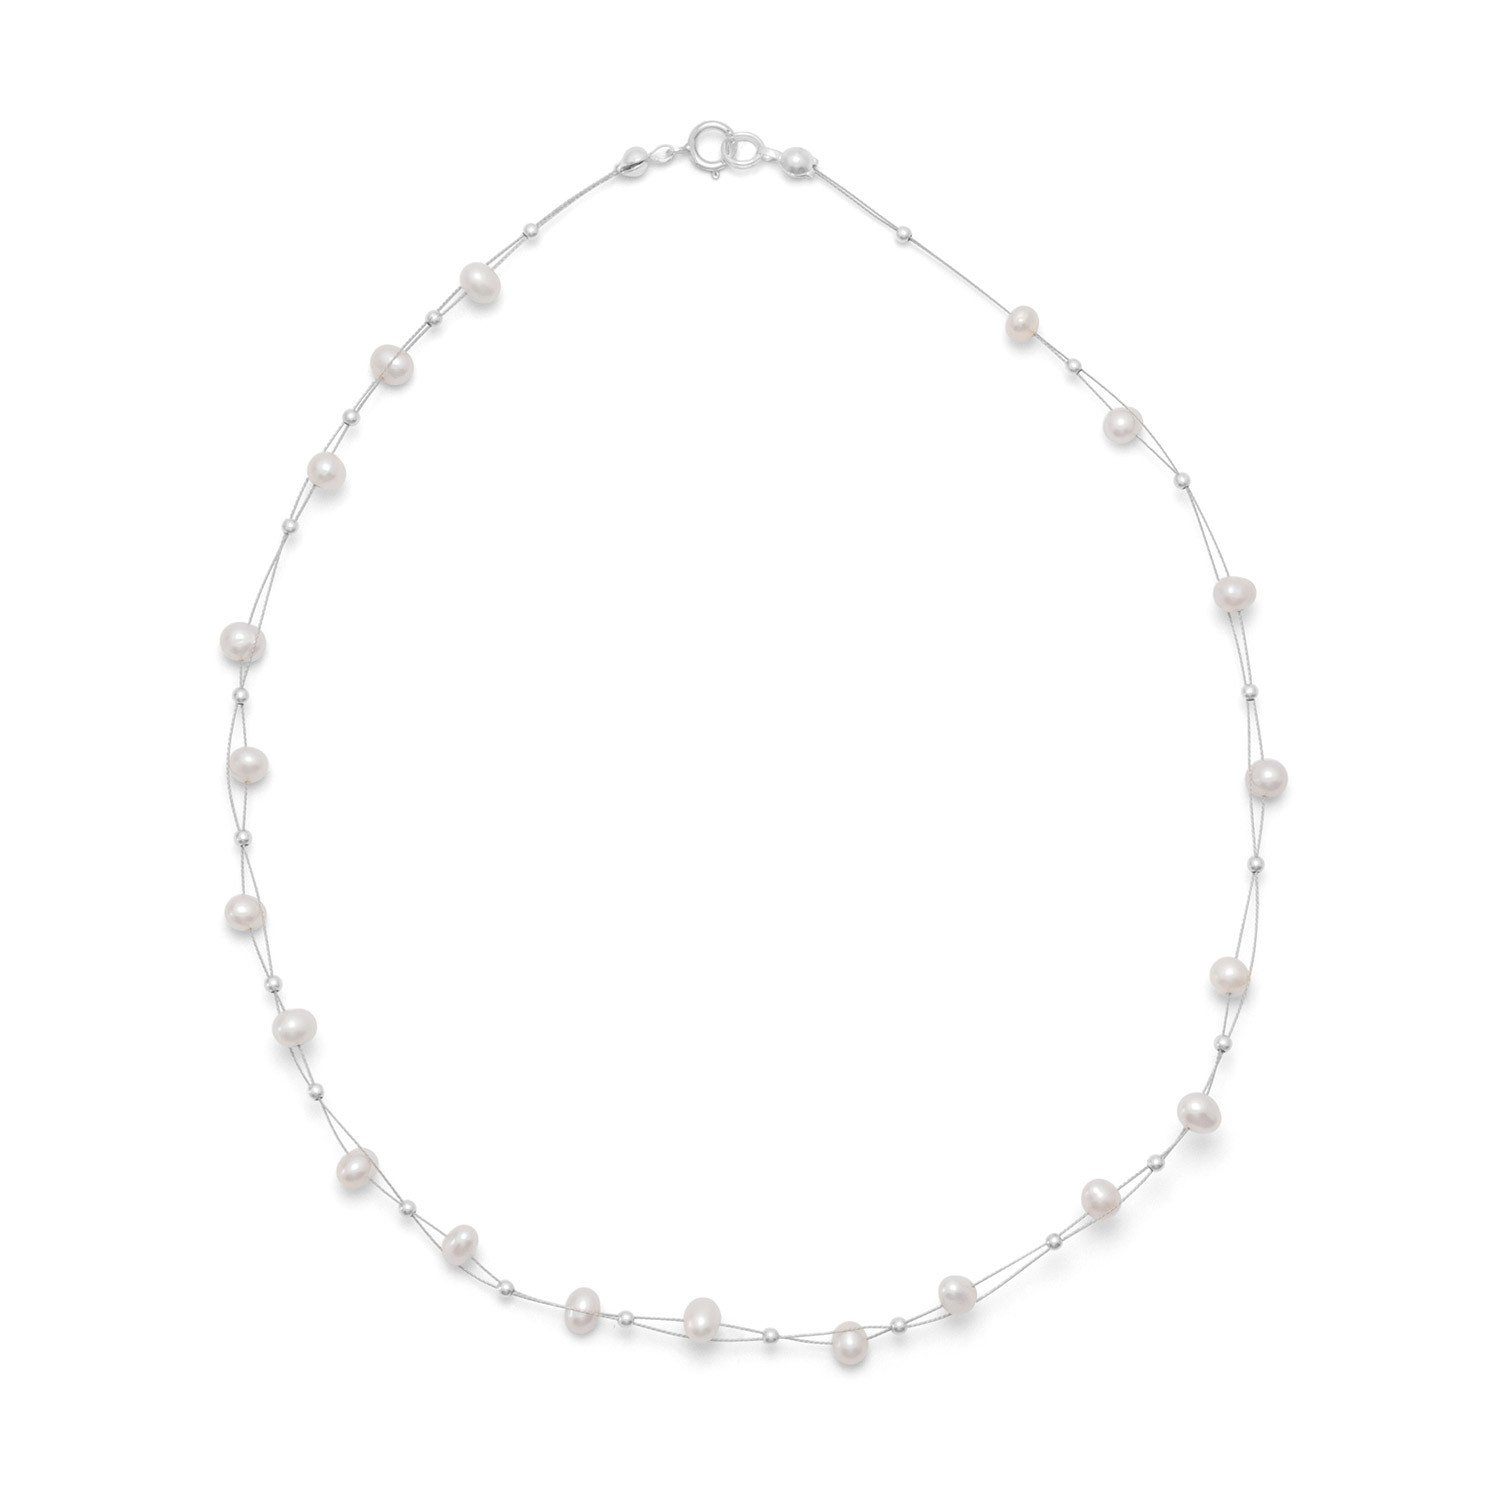 16″ Double Strand Cultured Freshwater Pearl Necklace